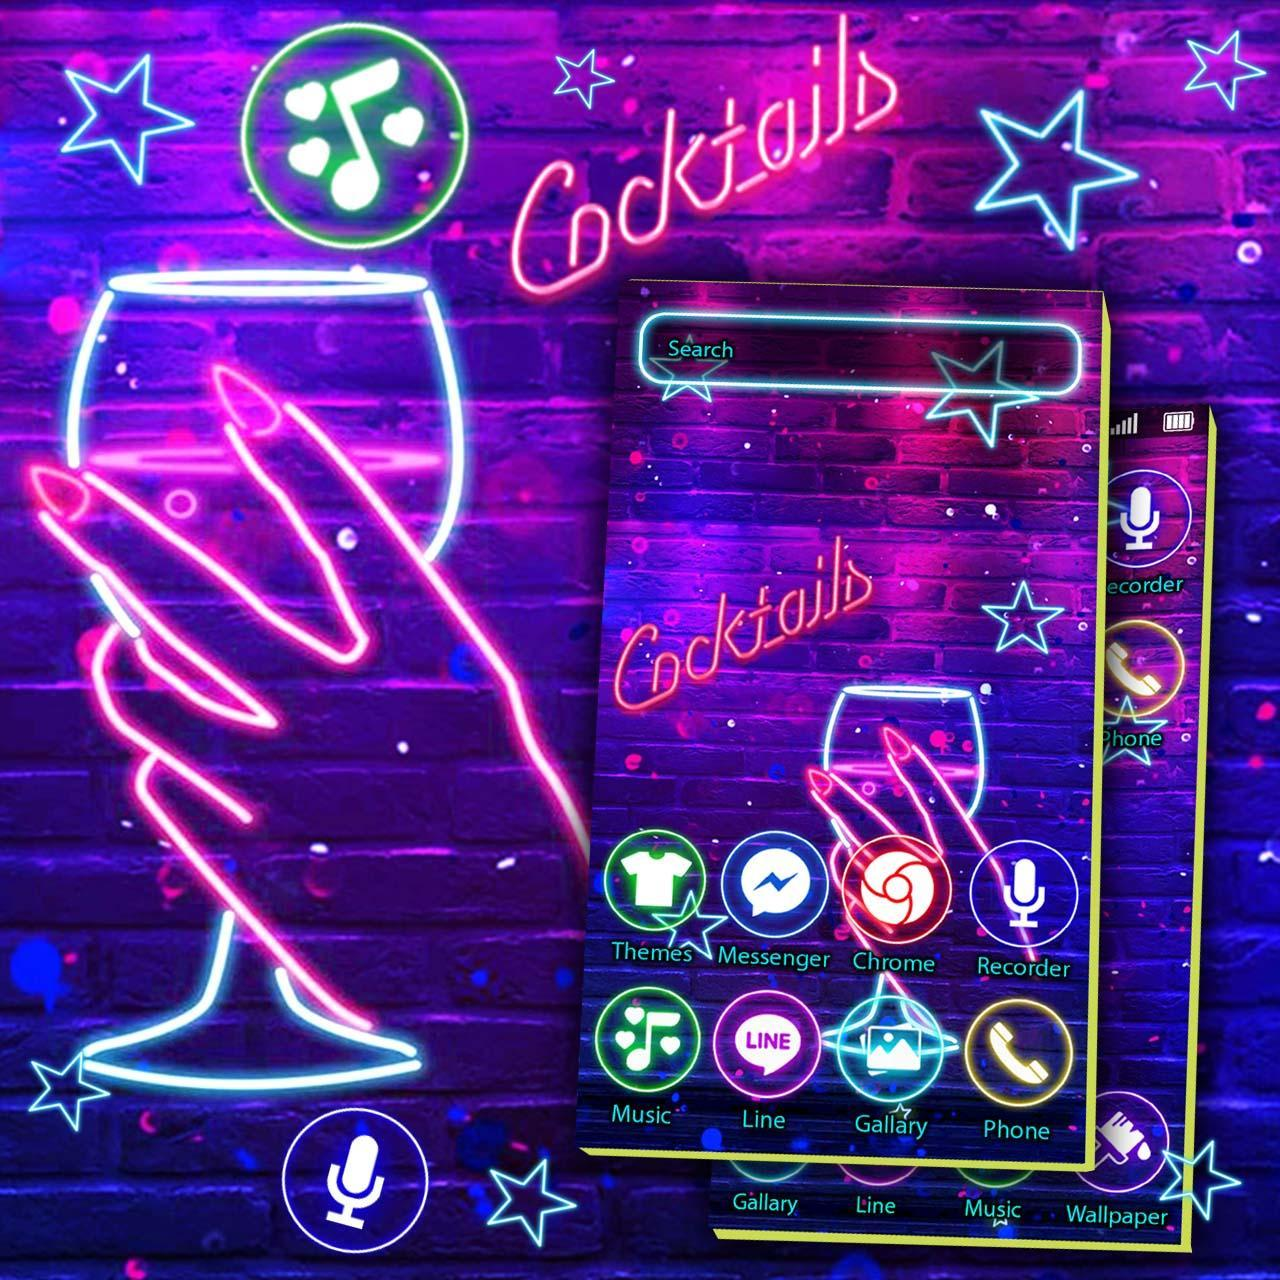 Neon Wine Bar Theme Live Wallpaper for Android   APK Download 1280x1280